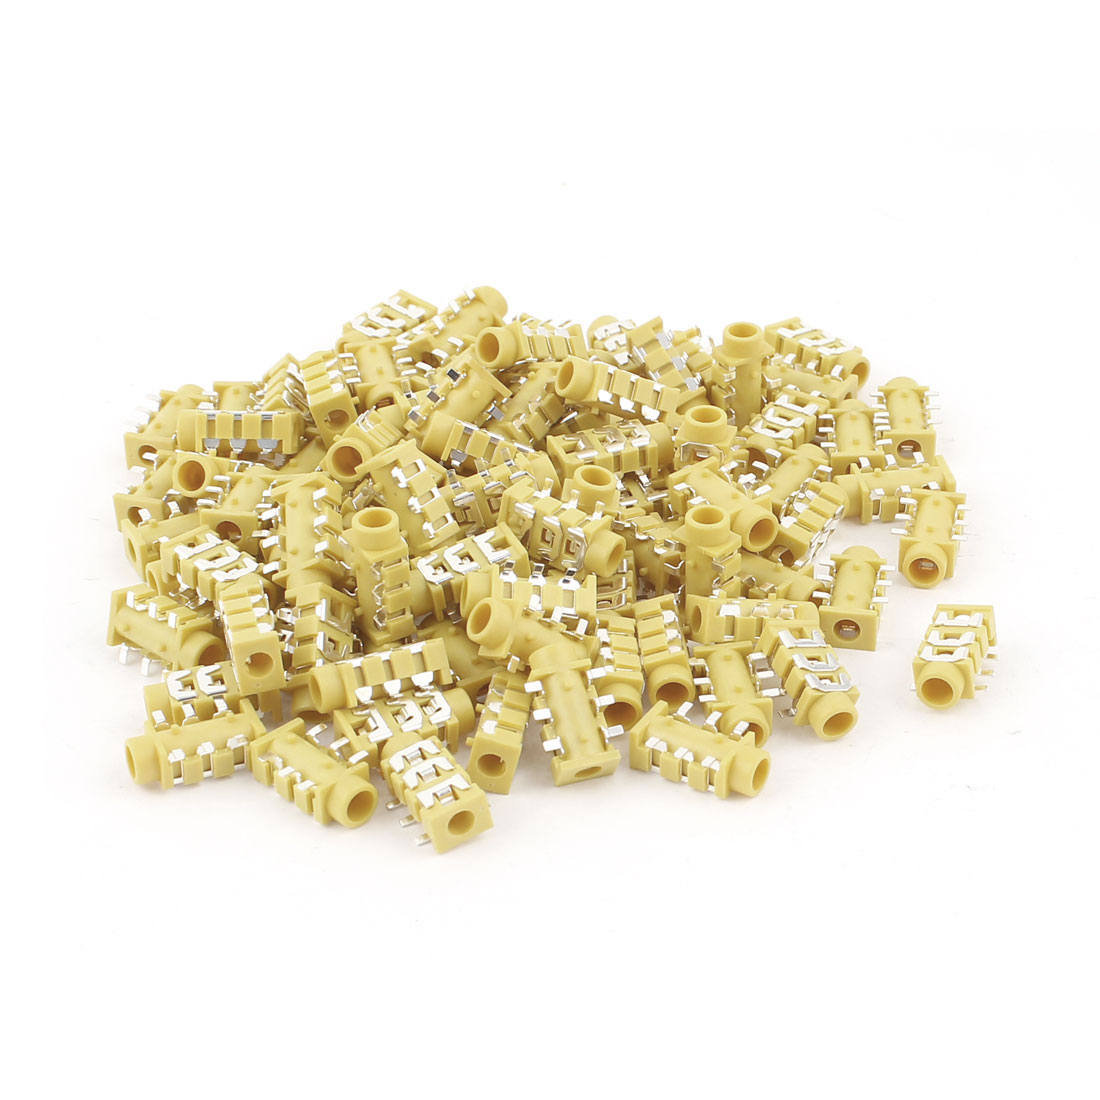 100 Pcs Yellow Plastic Audio Headset 6 Pin PCB 3.5mm Female Jack Sockets